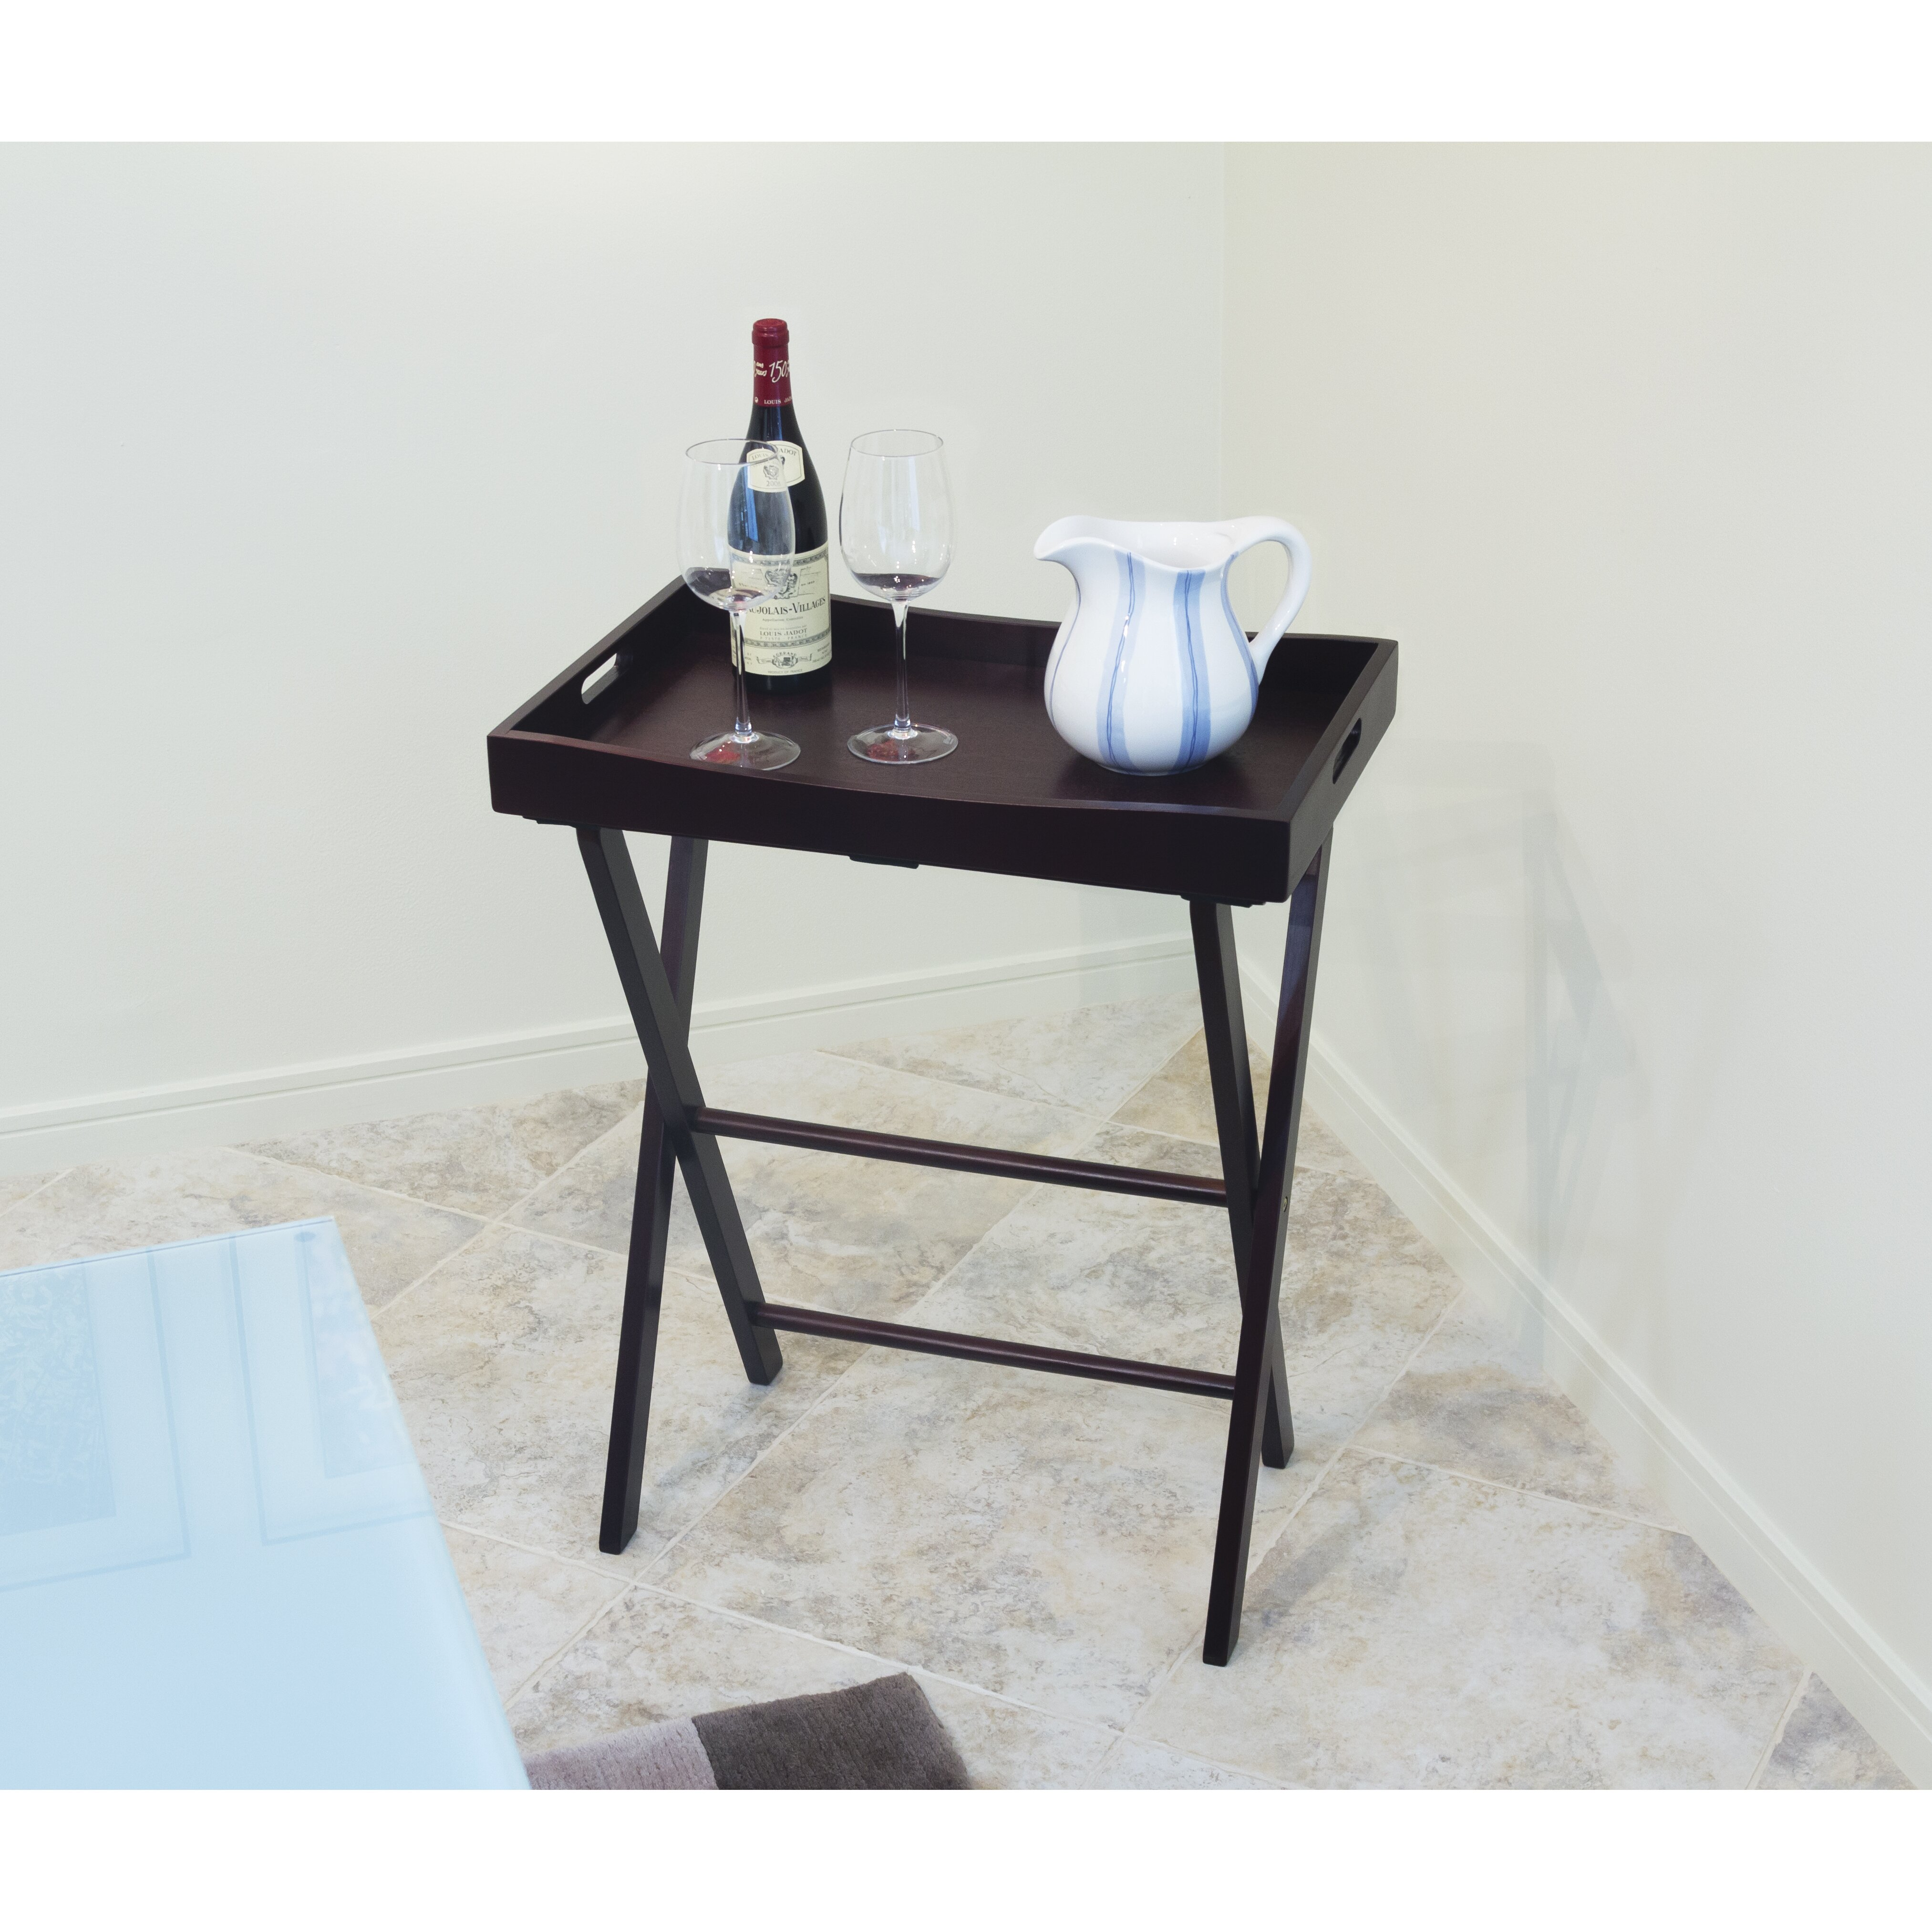 Lipper International Butler Tray With Right Height Luggage